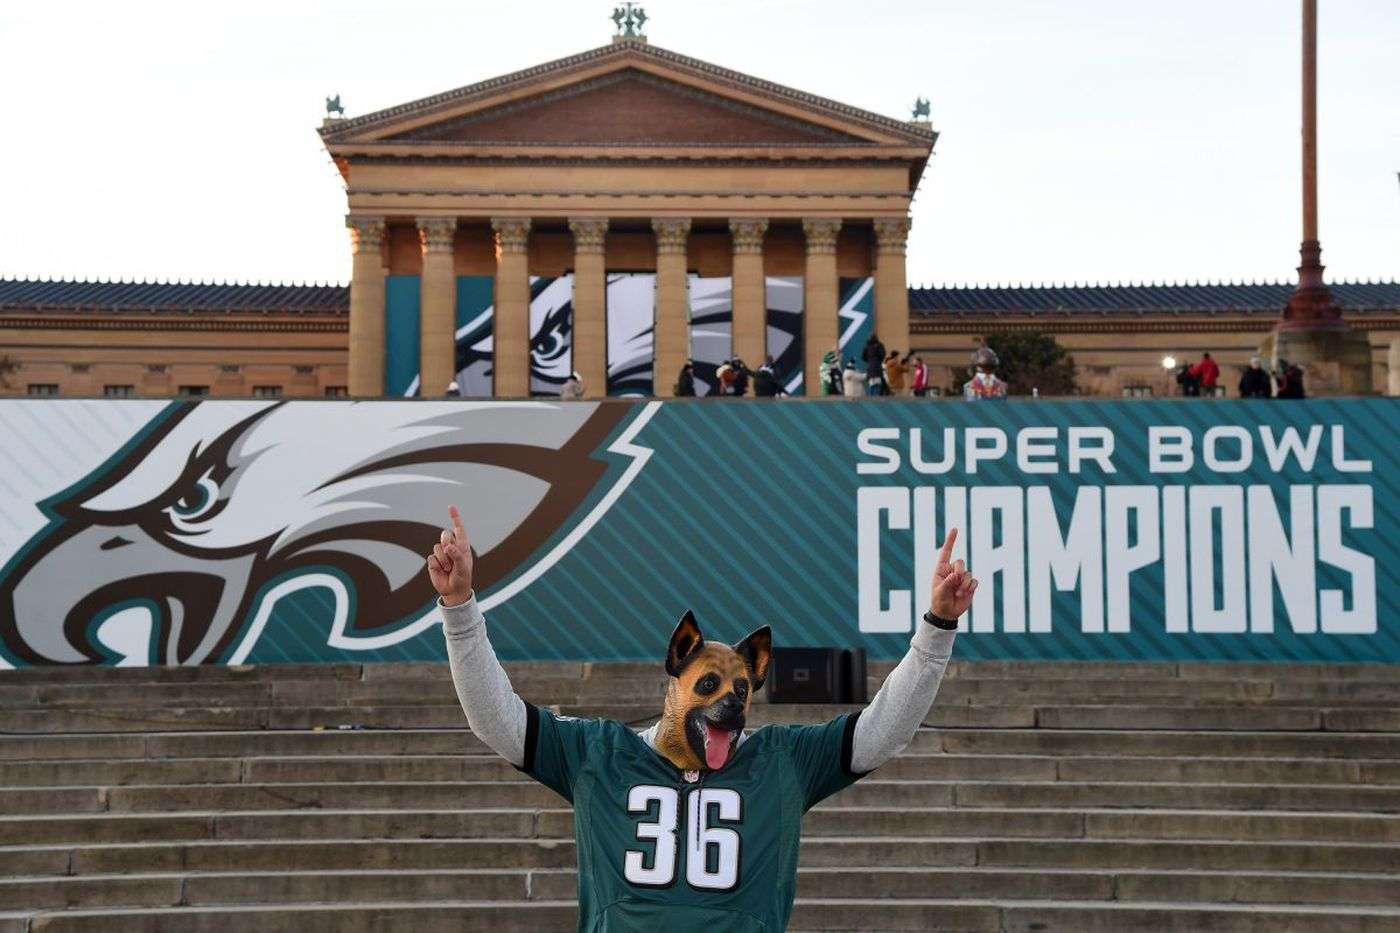 Stay hungry, Philly. We're underdogs no more | Editorial